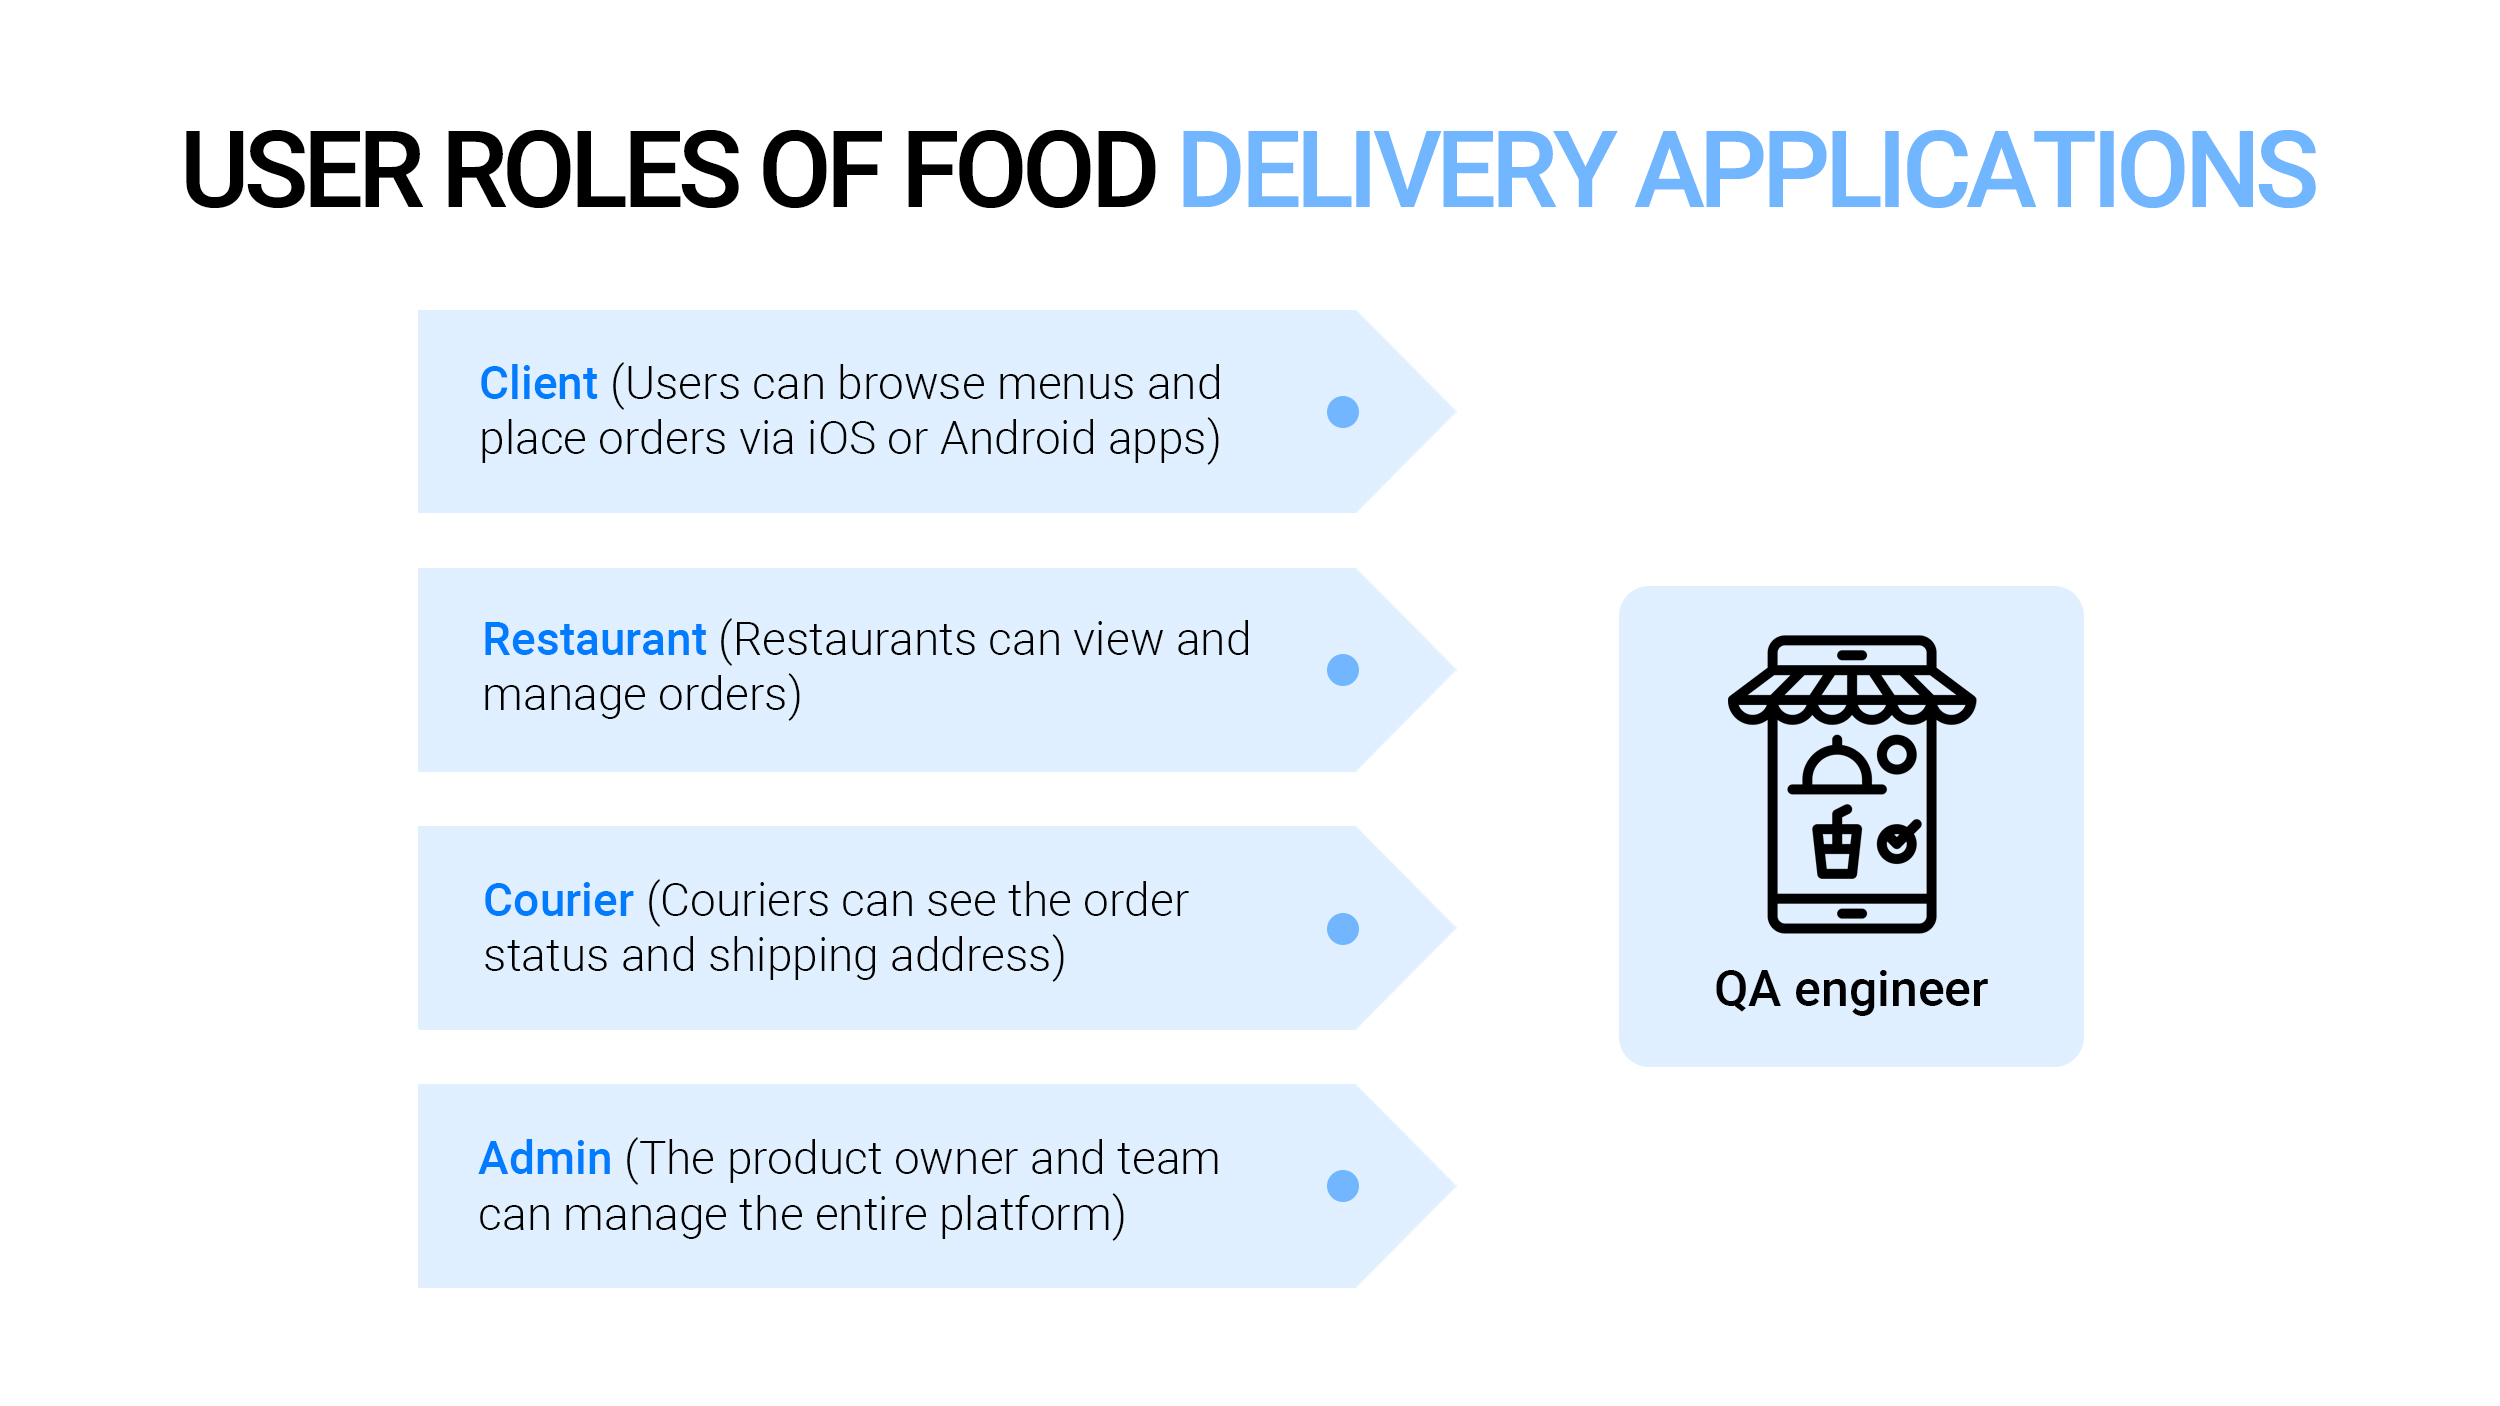 User roles of food delivery apps